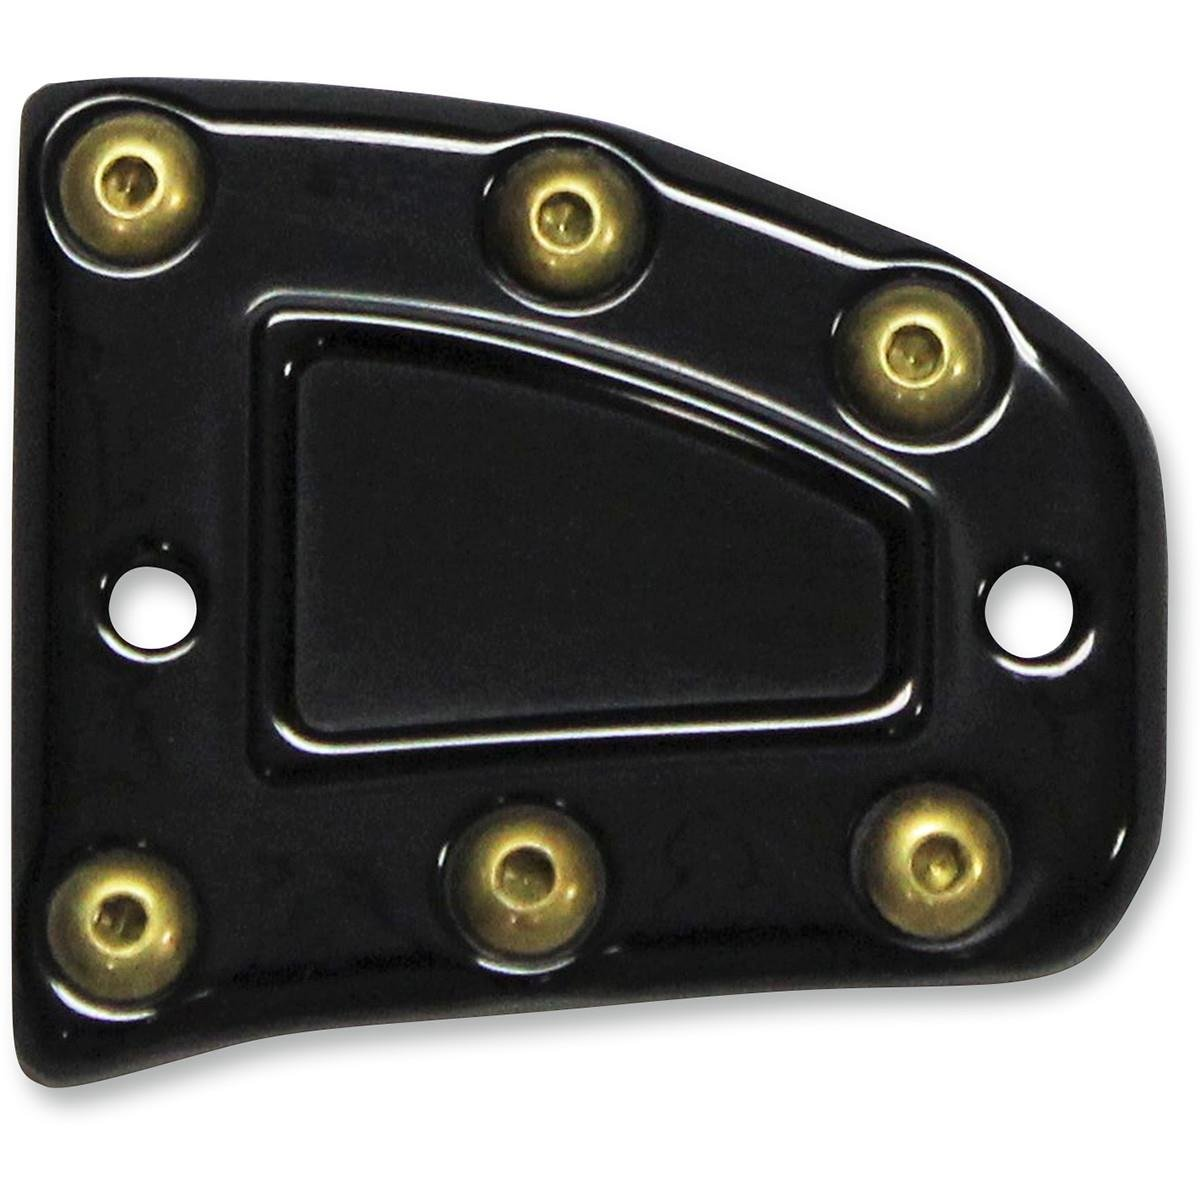 Brouhard Designs Bomber Series Master Cylinder Front Cover Kit - Black Anodized